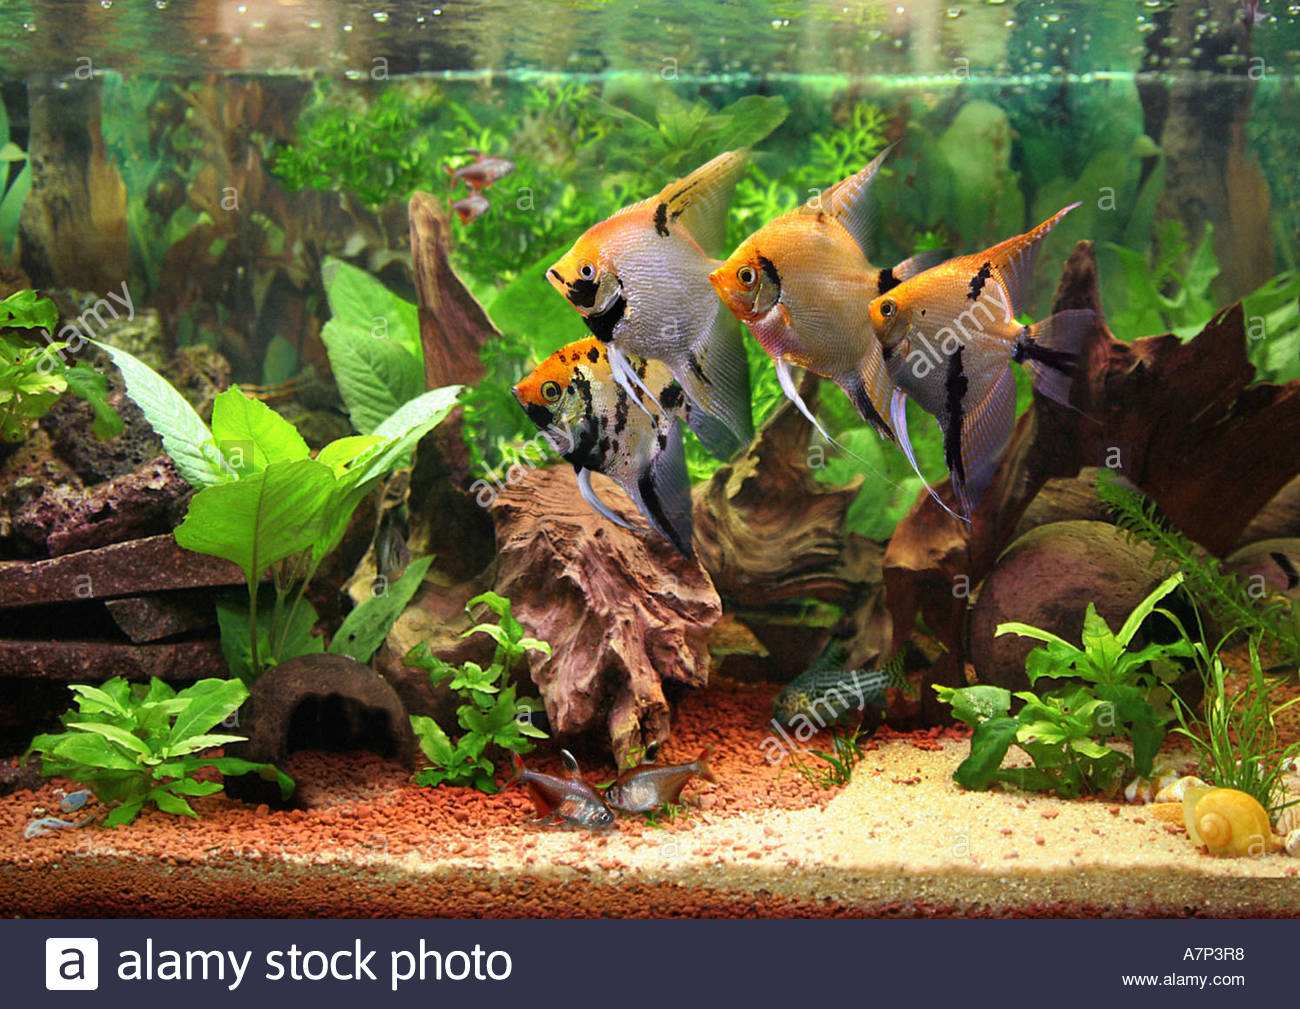 Freshwater aquarium fish tank pictures - Stock Photo Freshwater Angelfish Longfin Angel Fish Black Angelfish Scalare Pterophyllum Scalare Aquarium Fish Tank